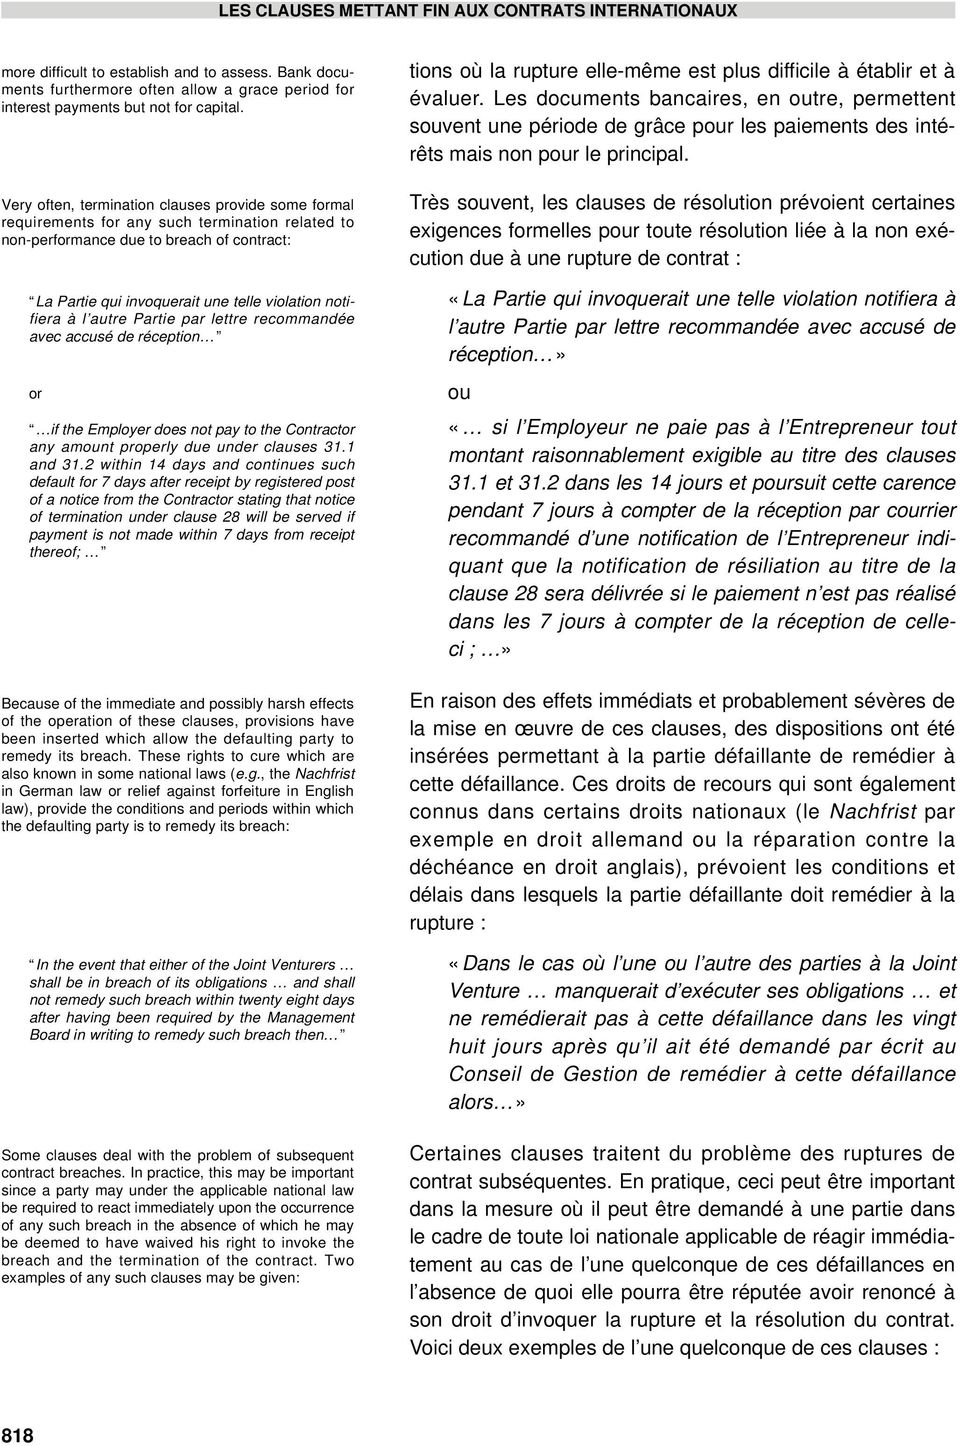 autre Partie par lettre recommandée avec accusé de réception if the Employer does not pay to the Contract any amnt properly due under clauses 31.1 and 31.